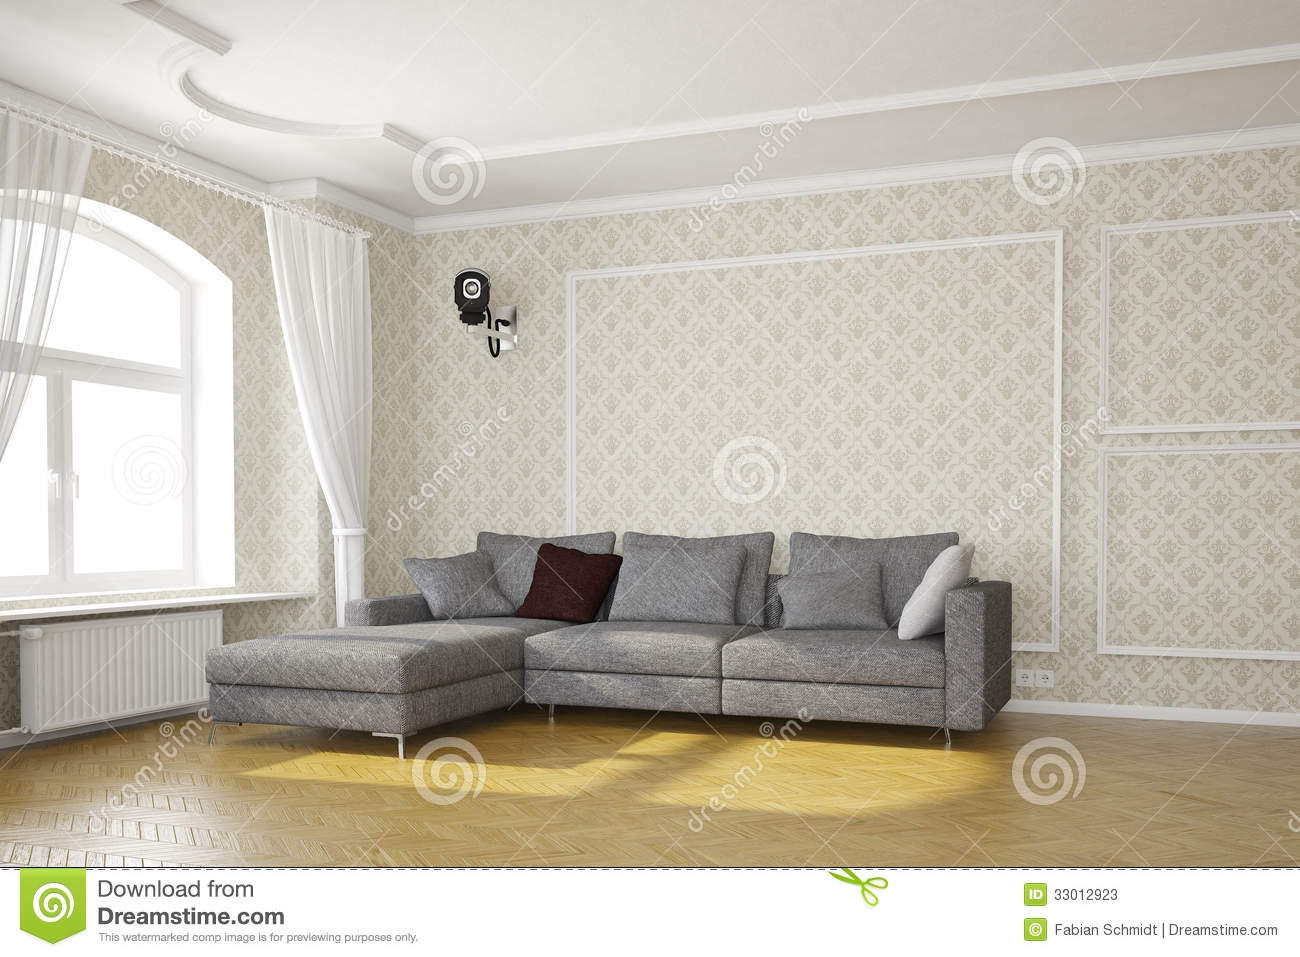 Living Room With Cctv Camera Stock Photos Image 33012923